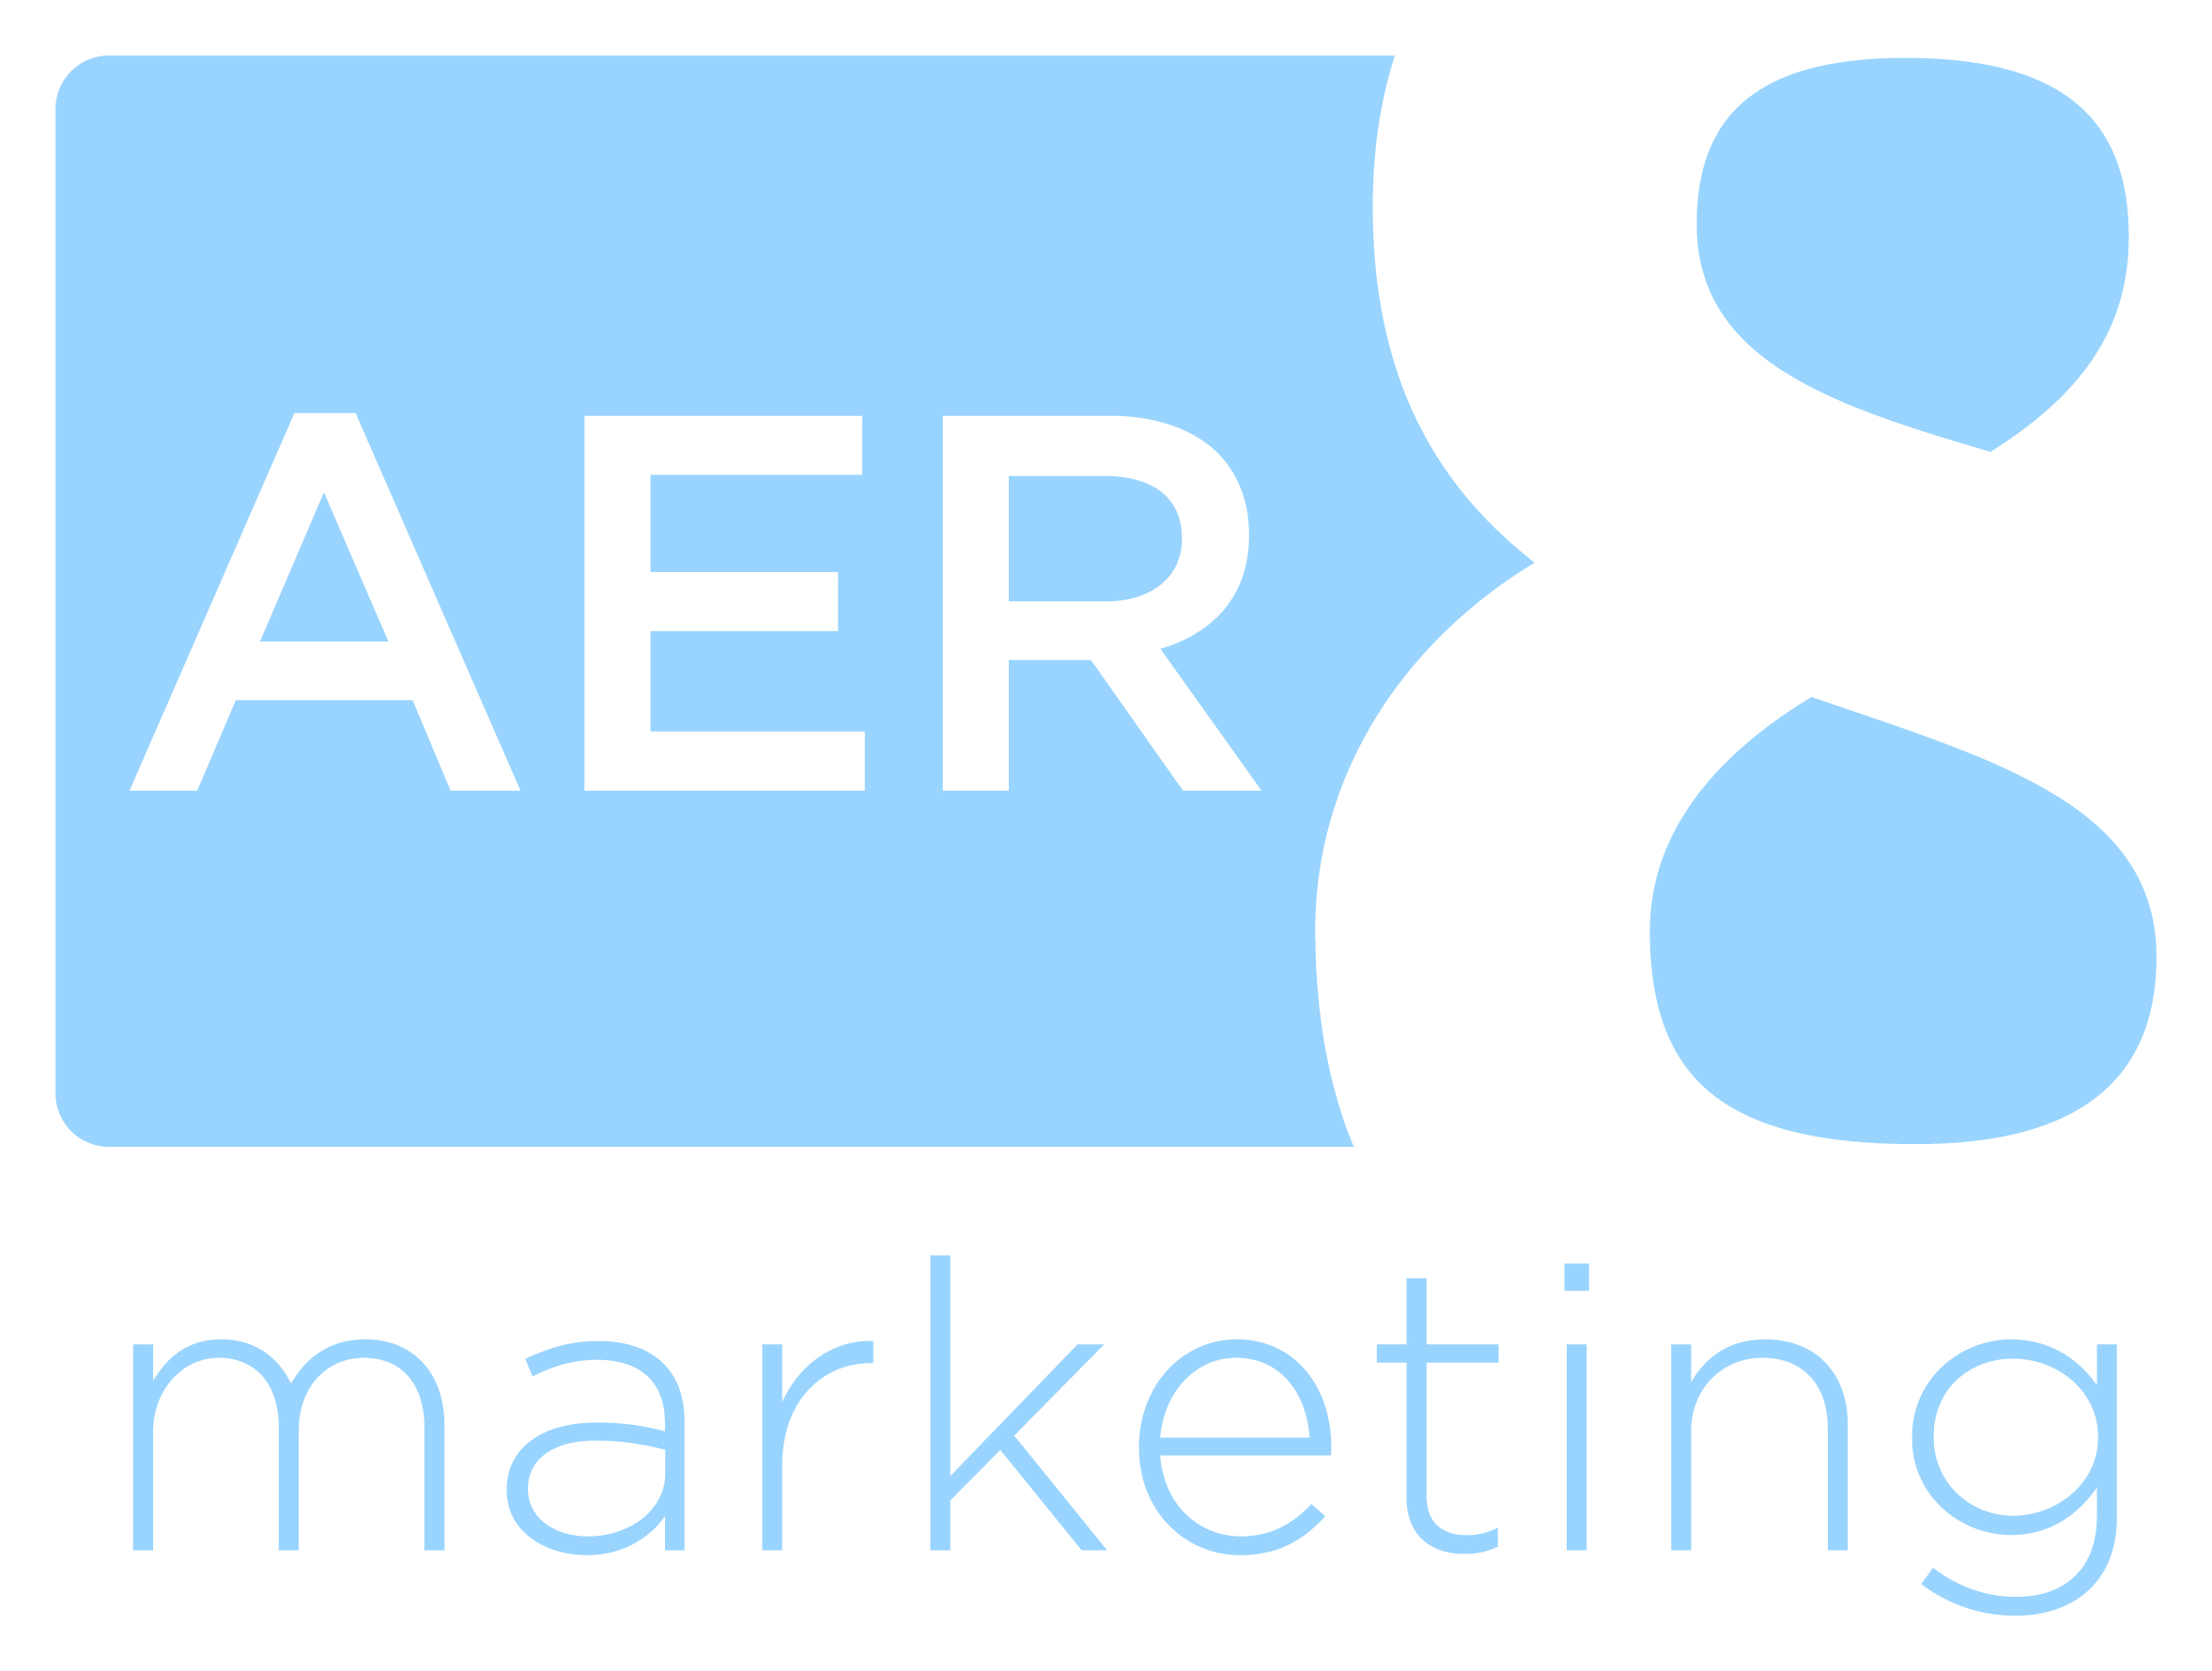 Aer8 marketing logo